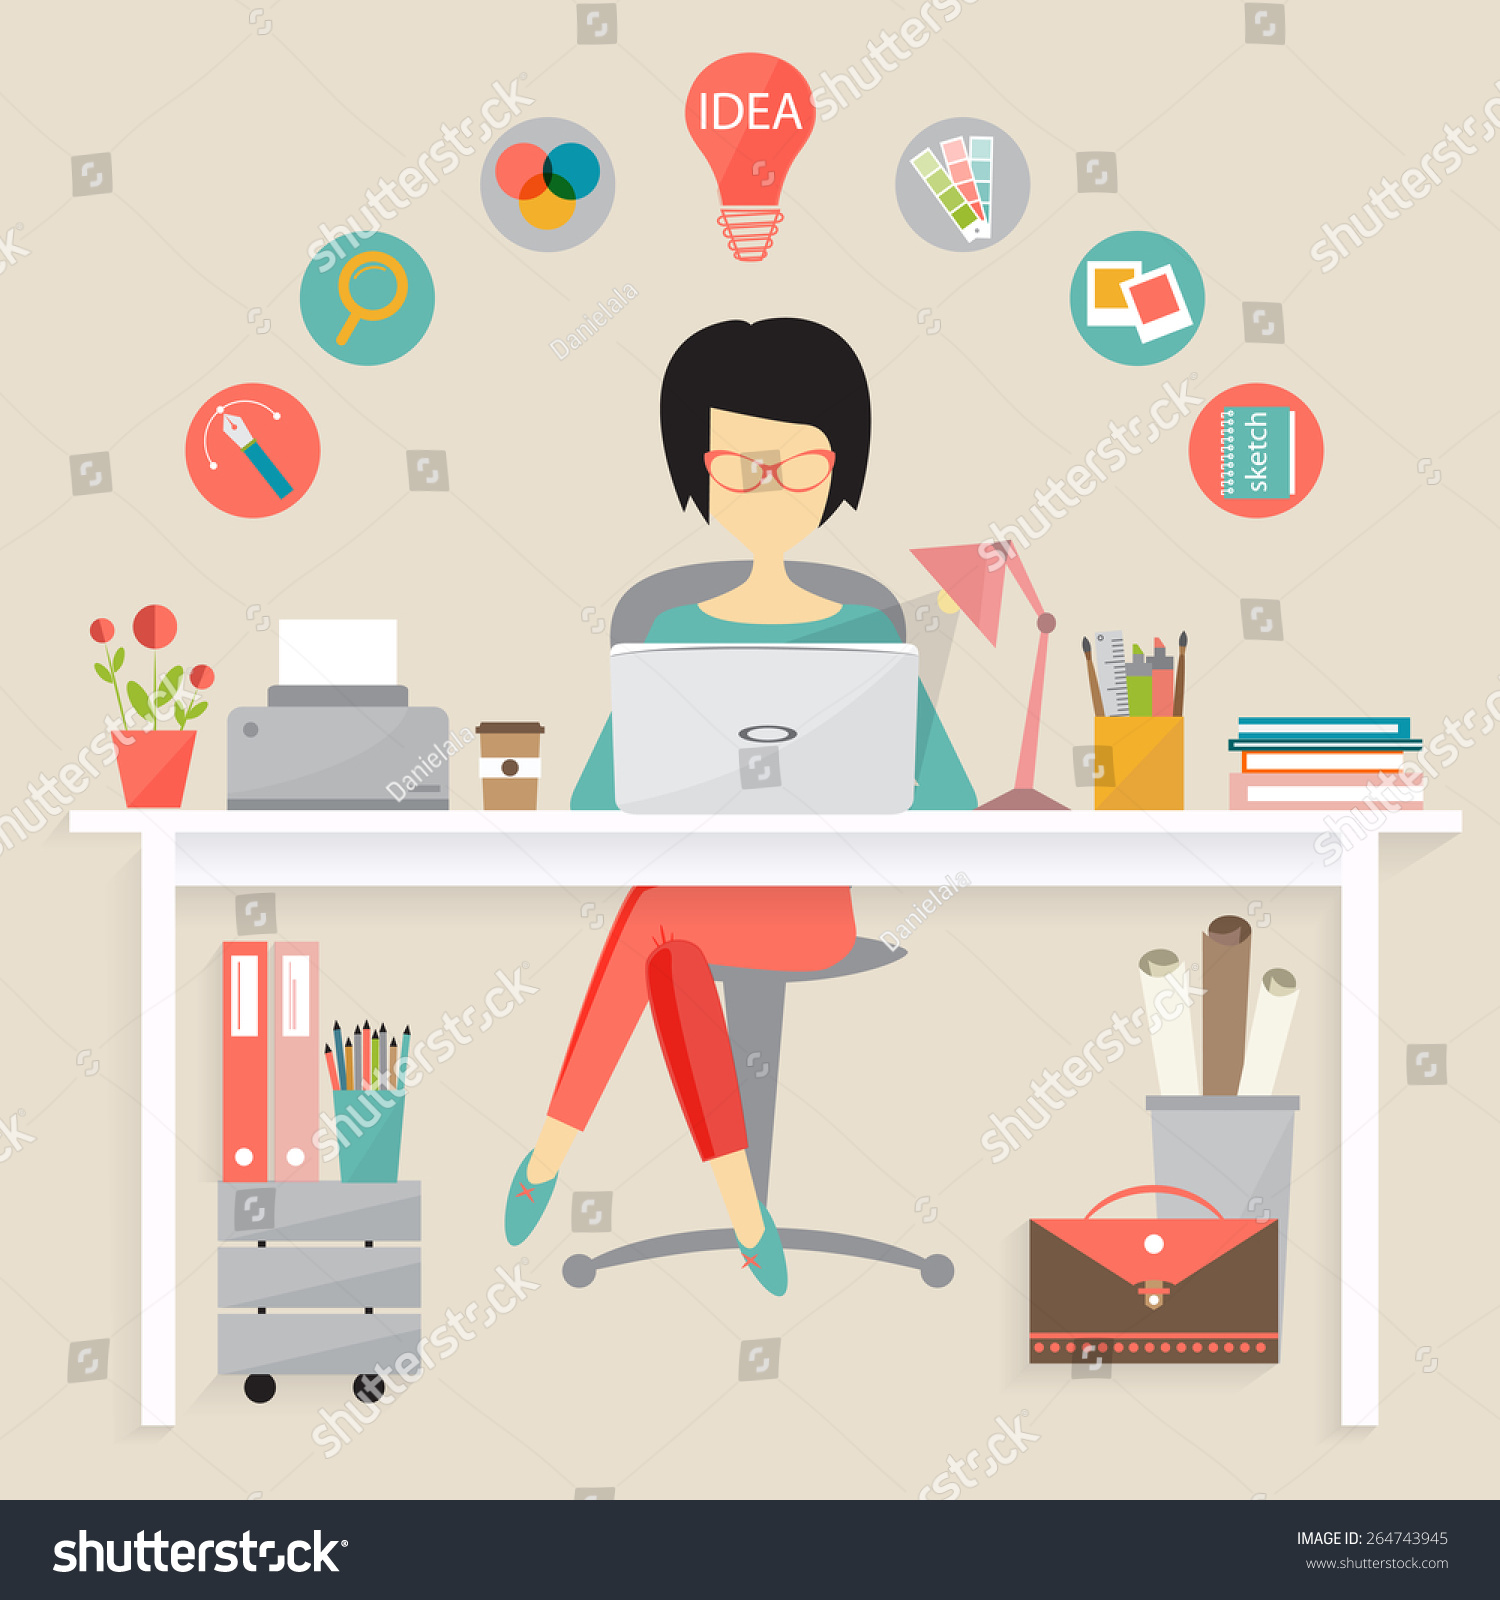 28 Freelance Graphic Design Jobs From Freelance Graphic Design Jobs 15 Must Websites To